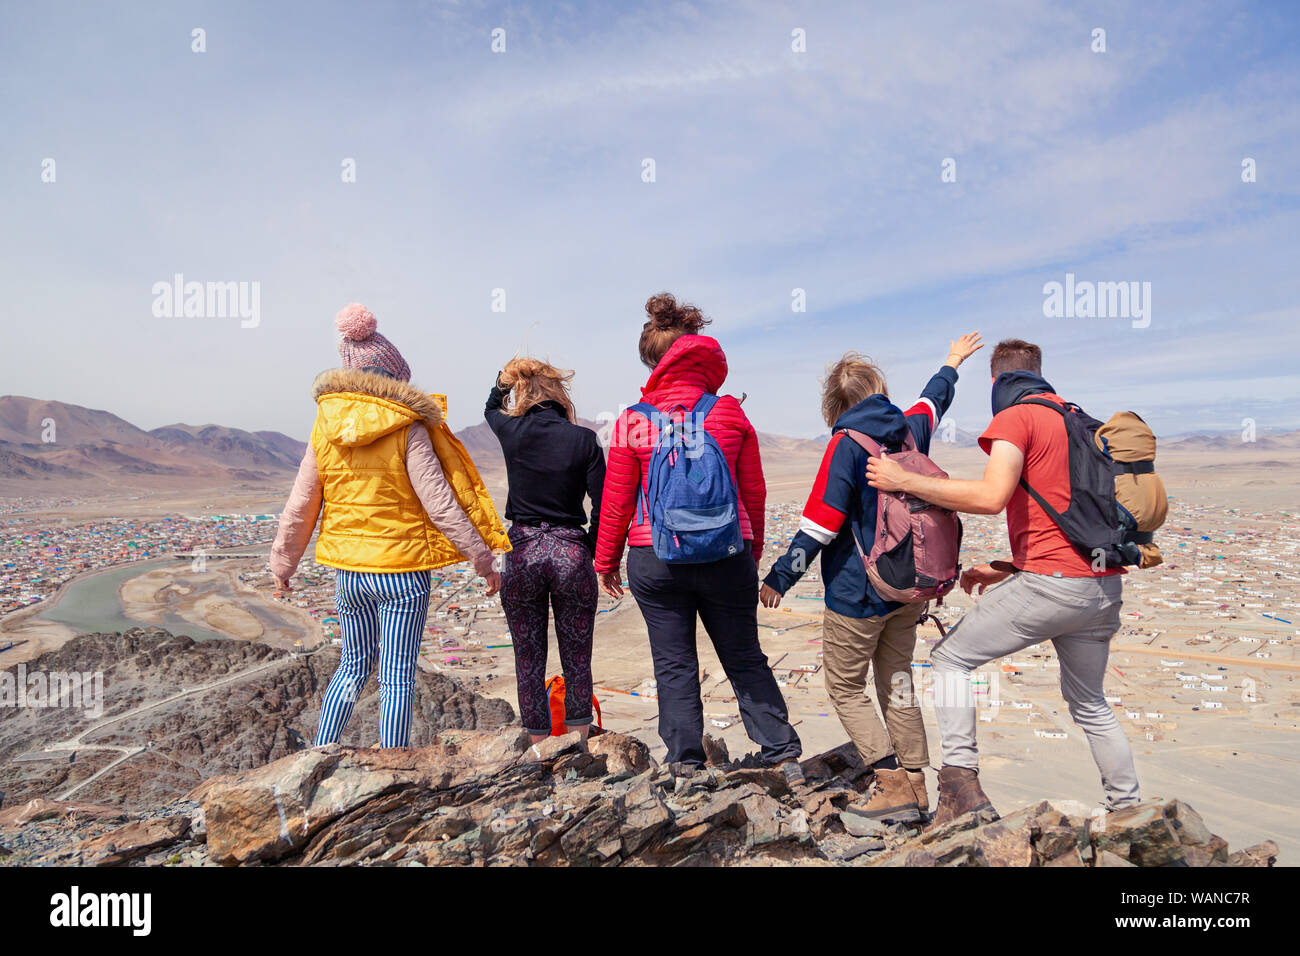 Mongolia Ulgii 2019-05-04 Tourist group in colored clothes with backpacks hiking, climbing, walking together with guide standing on mountain top, view Stock Photo